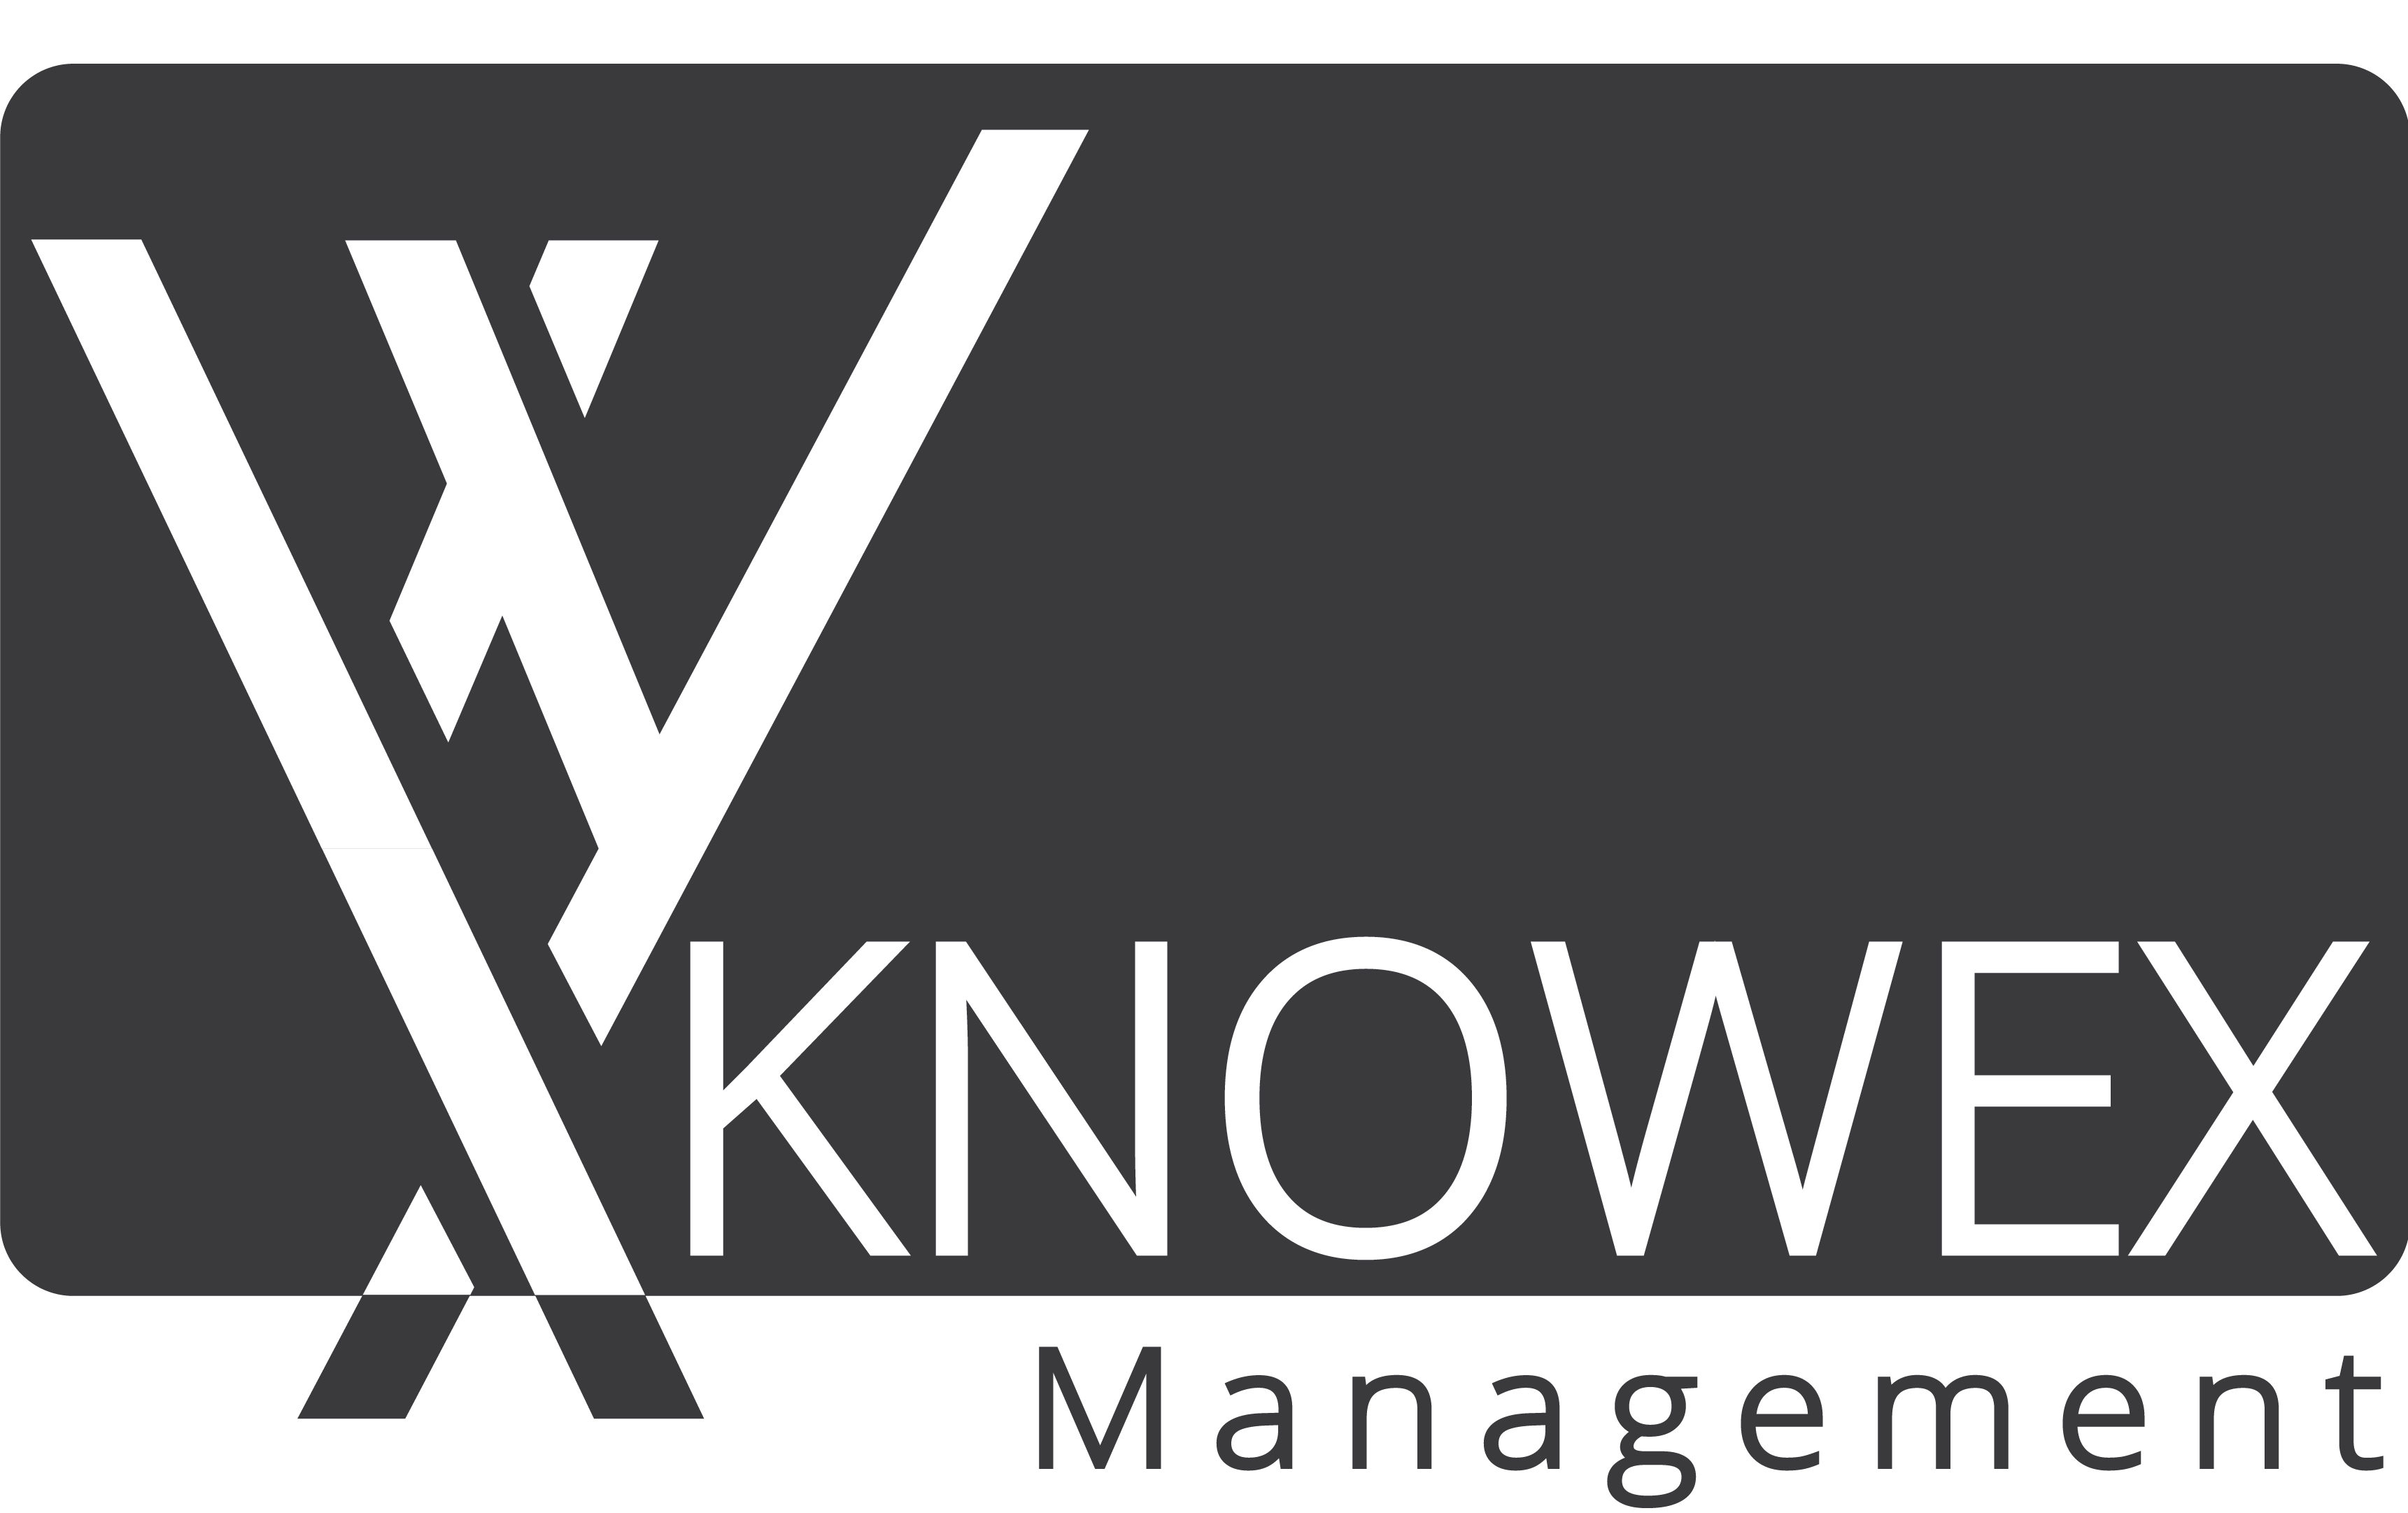 Knowex agri